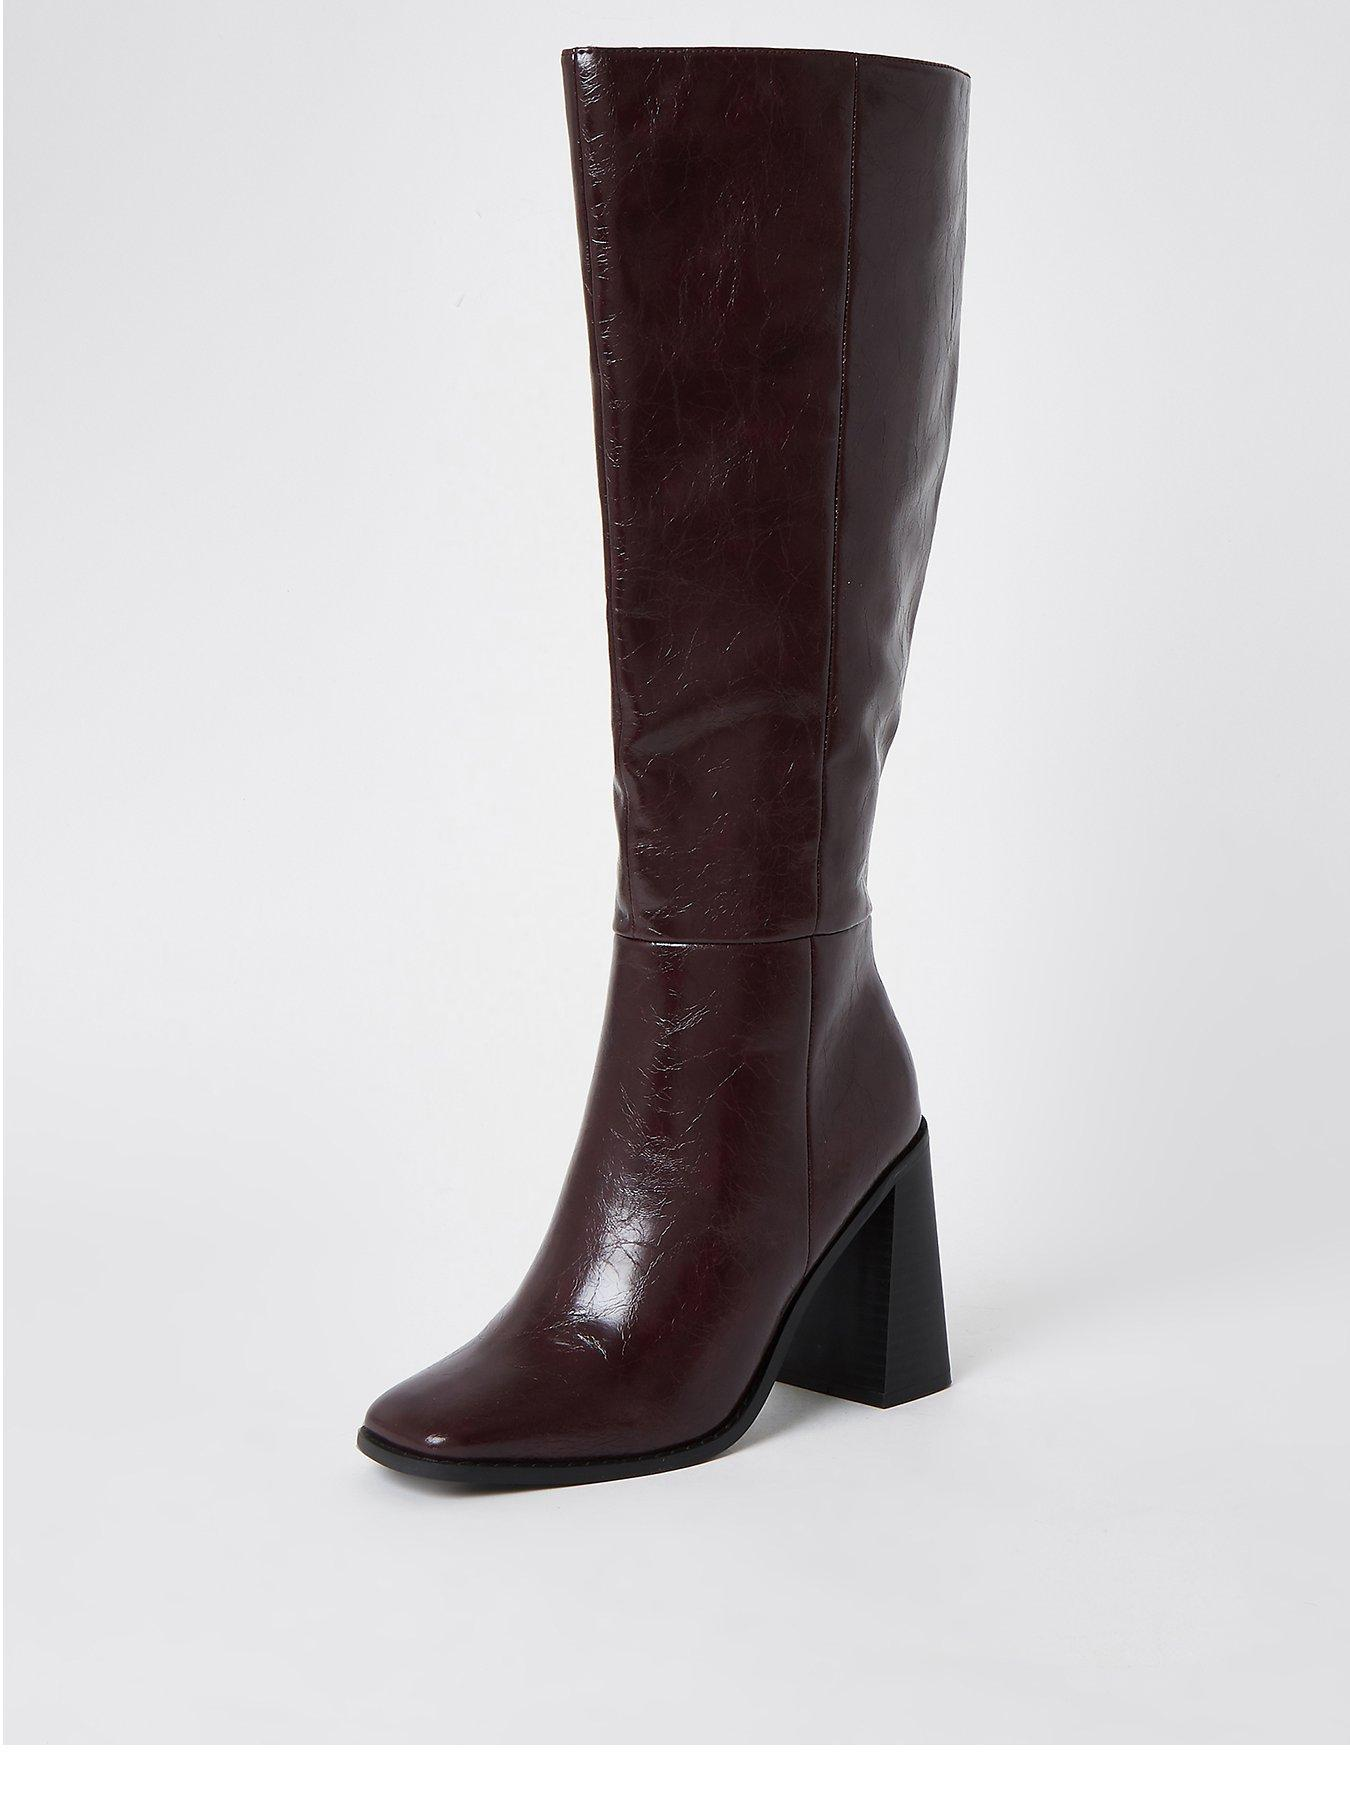 Knee High Boots | River island | Shoes